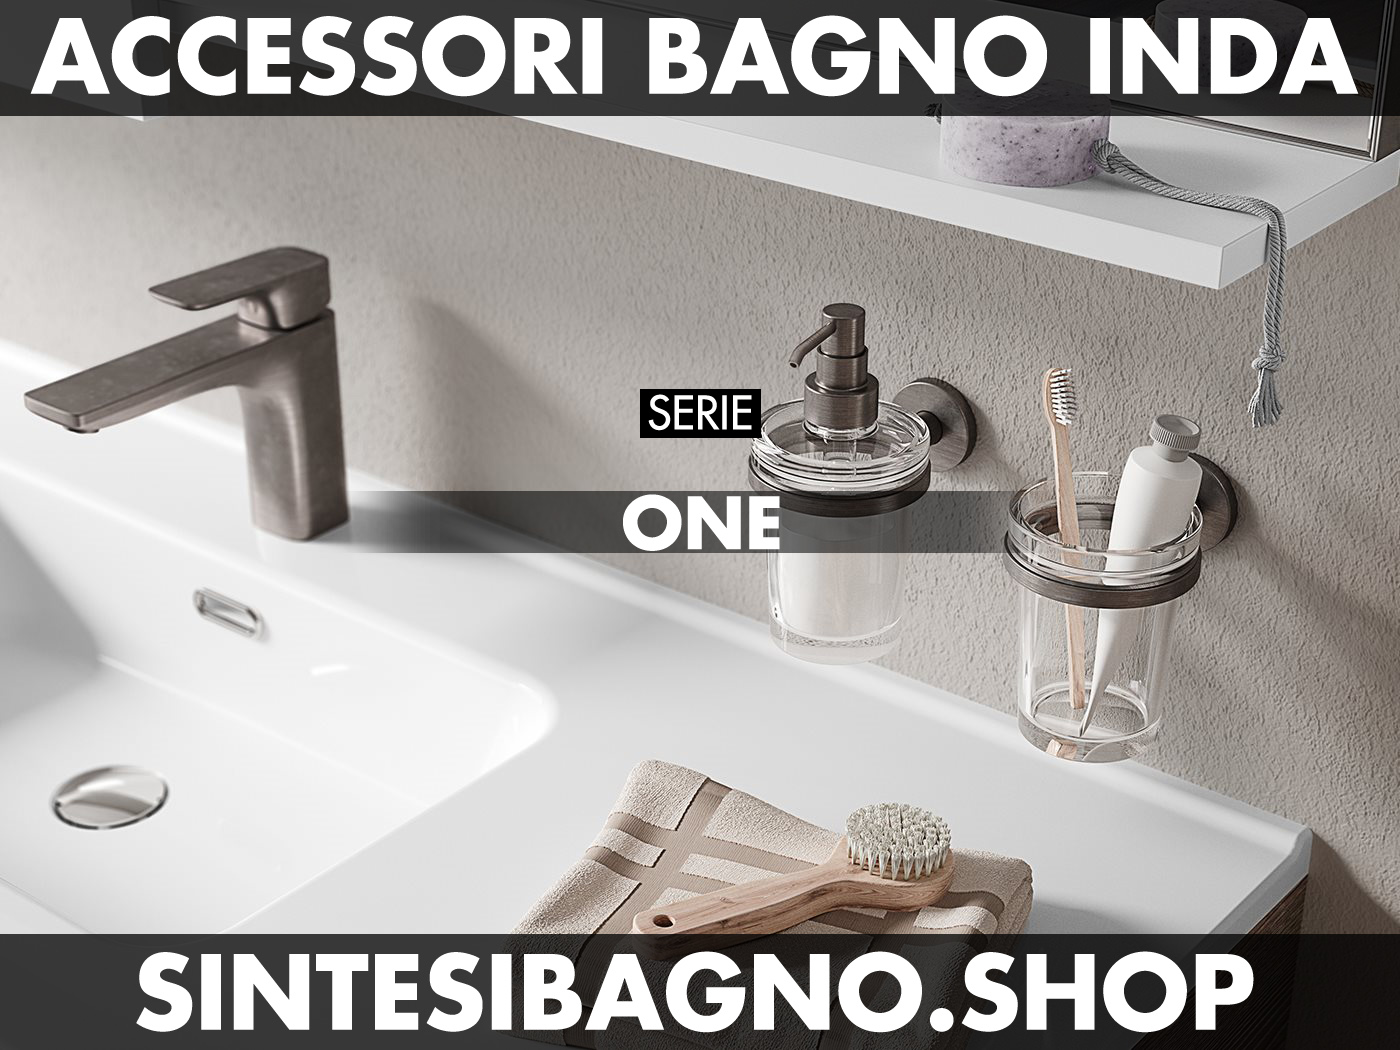 Accessori Bagno Inda serie ONE